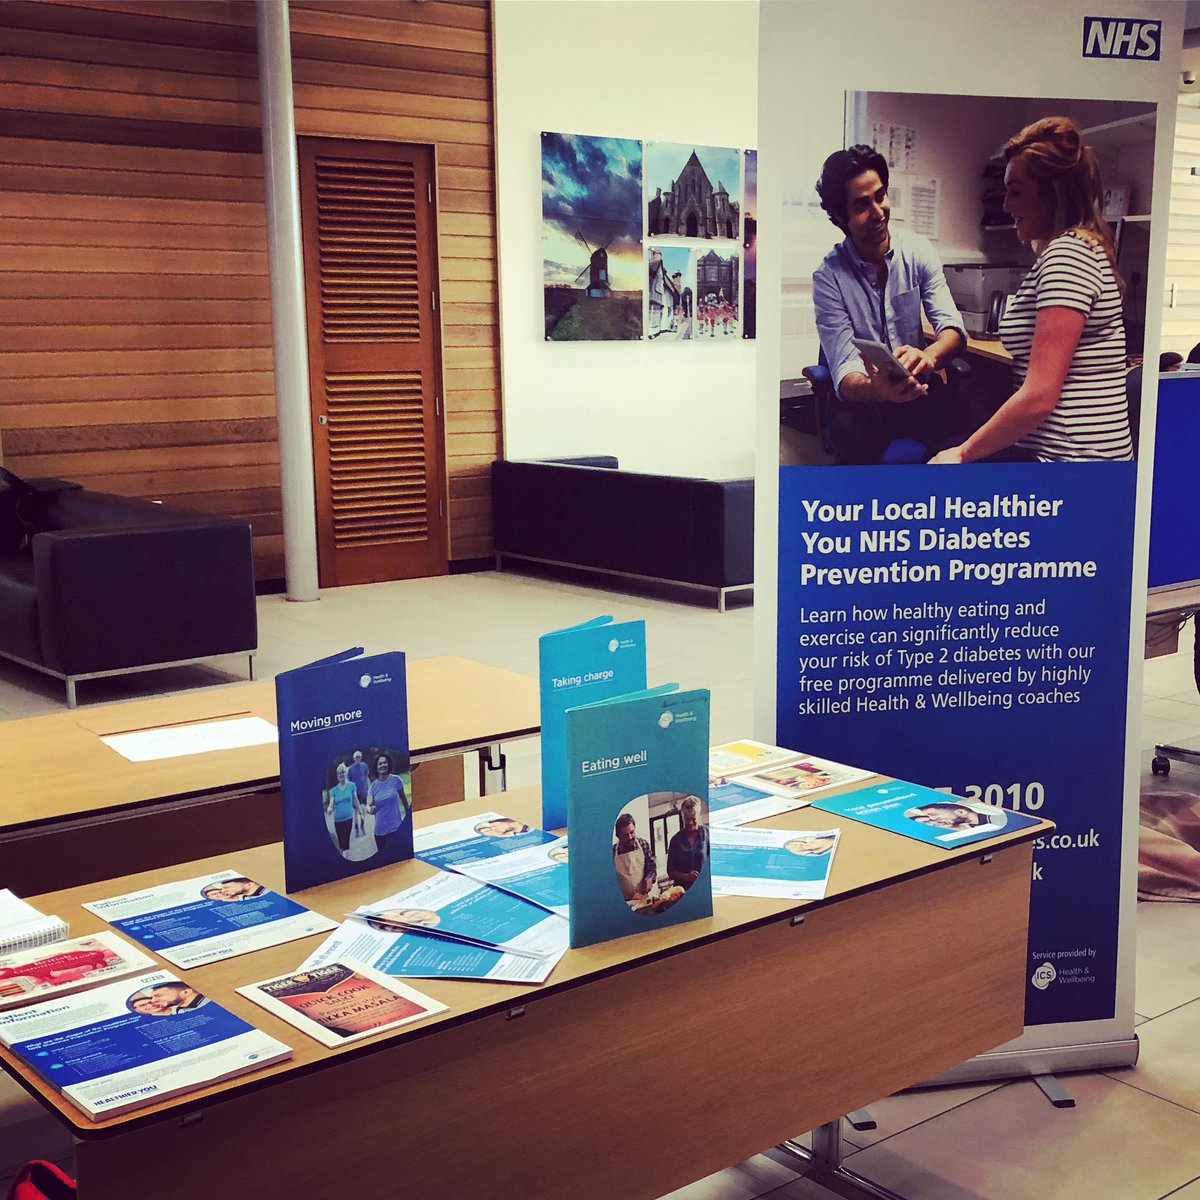 test Twitter Media - We were in Aylesbury, Buckinghamshire at the Practice Staff PLT event raising awareness of the local healthier you NHS Diabetes Prevention Programme. For more information visit our website: https://t.co/Uuo6aAxBan #DPP #Diabetes #Type2 @bucksccgs https://t.co/5vVND4oIOZ